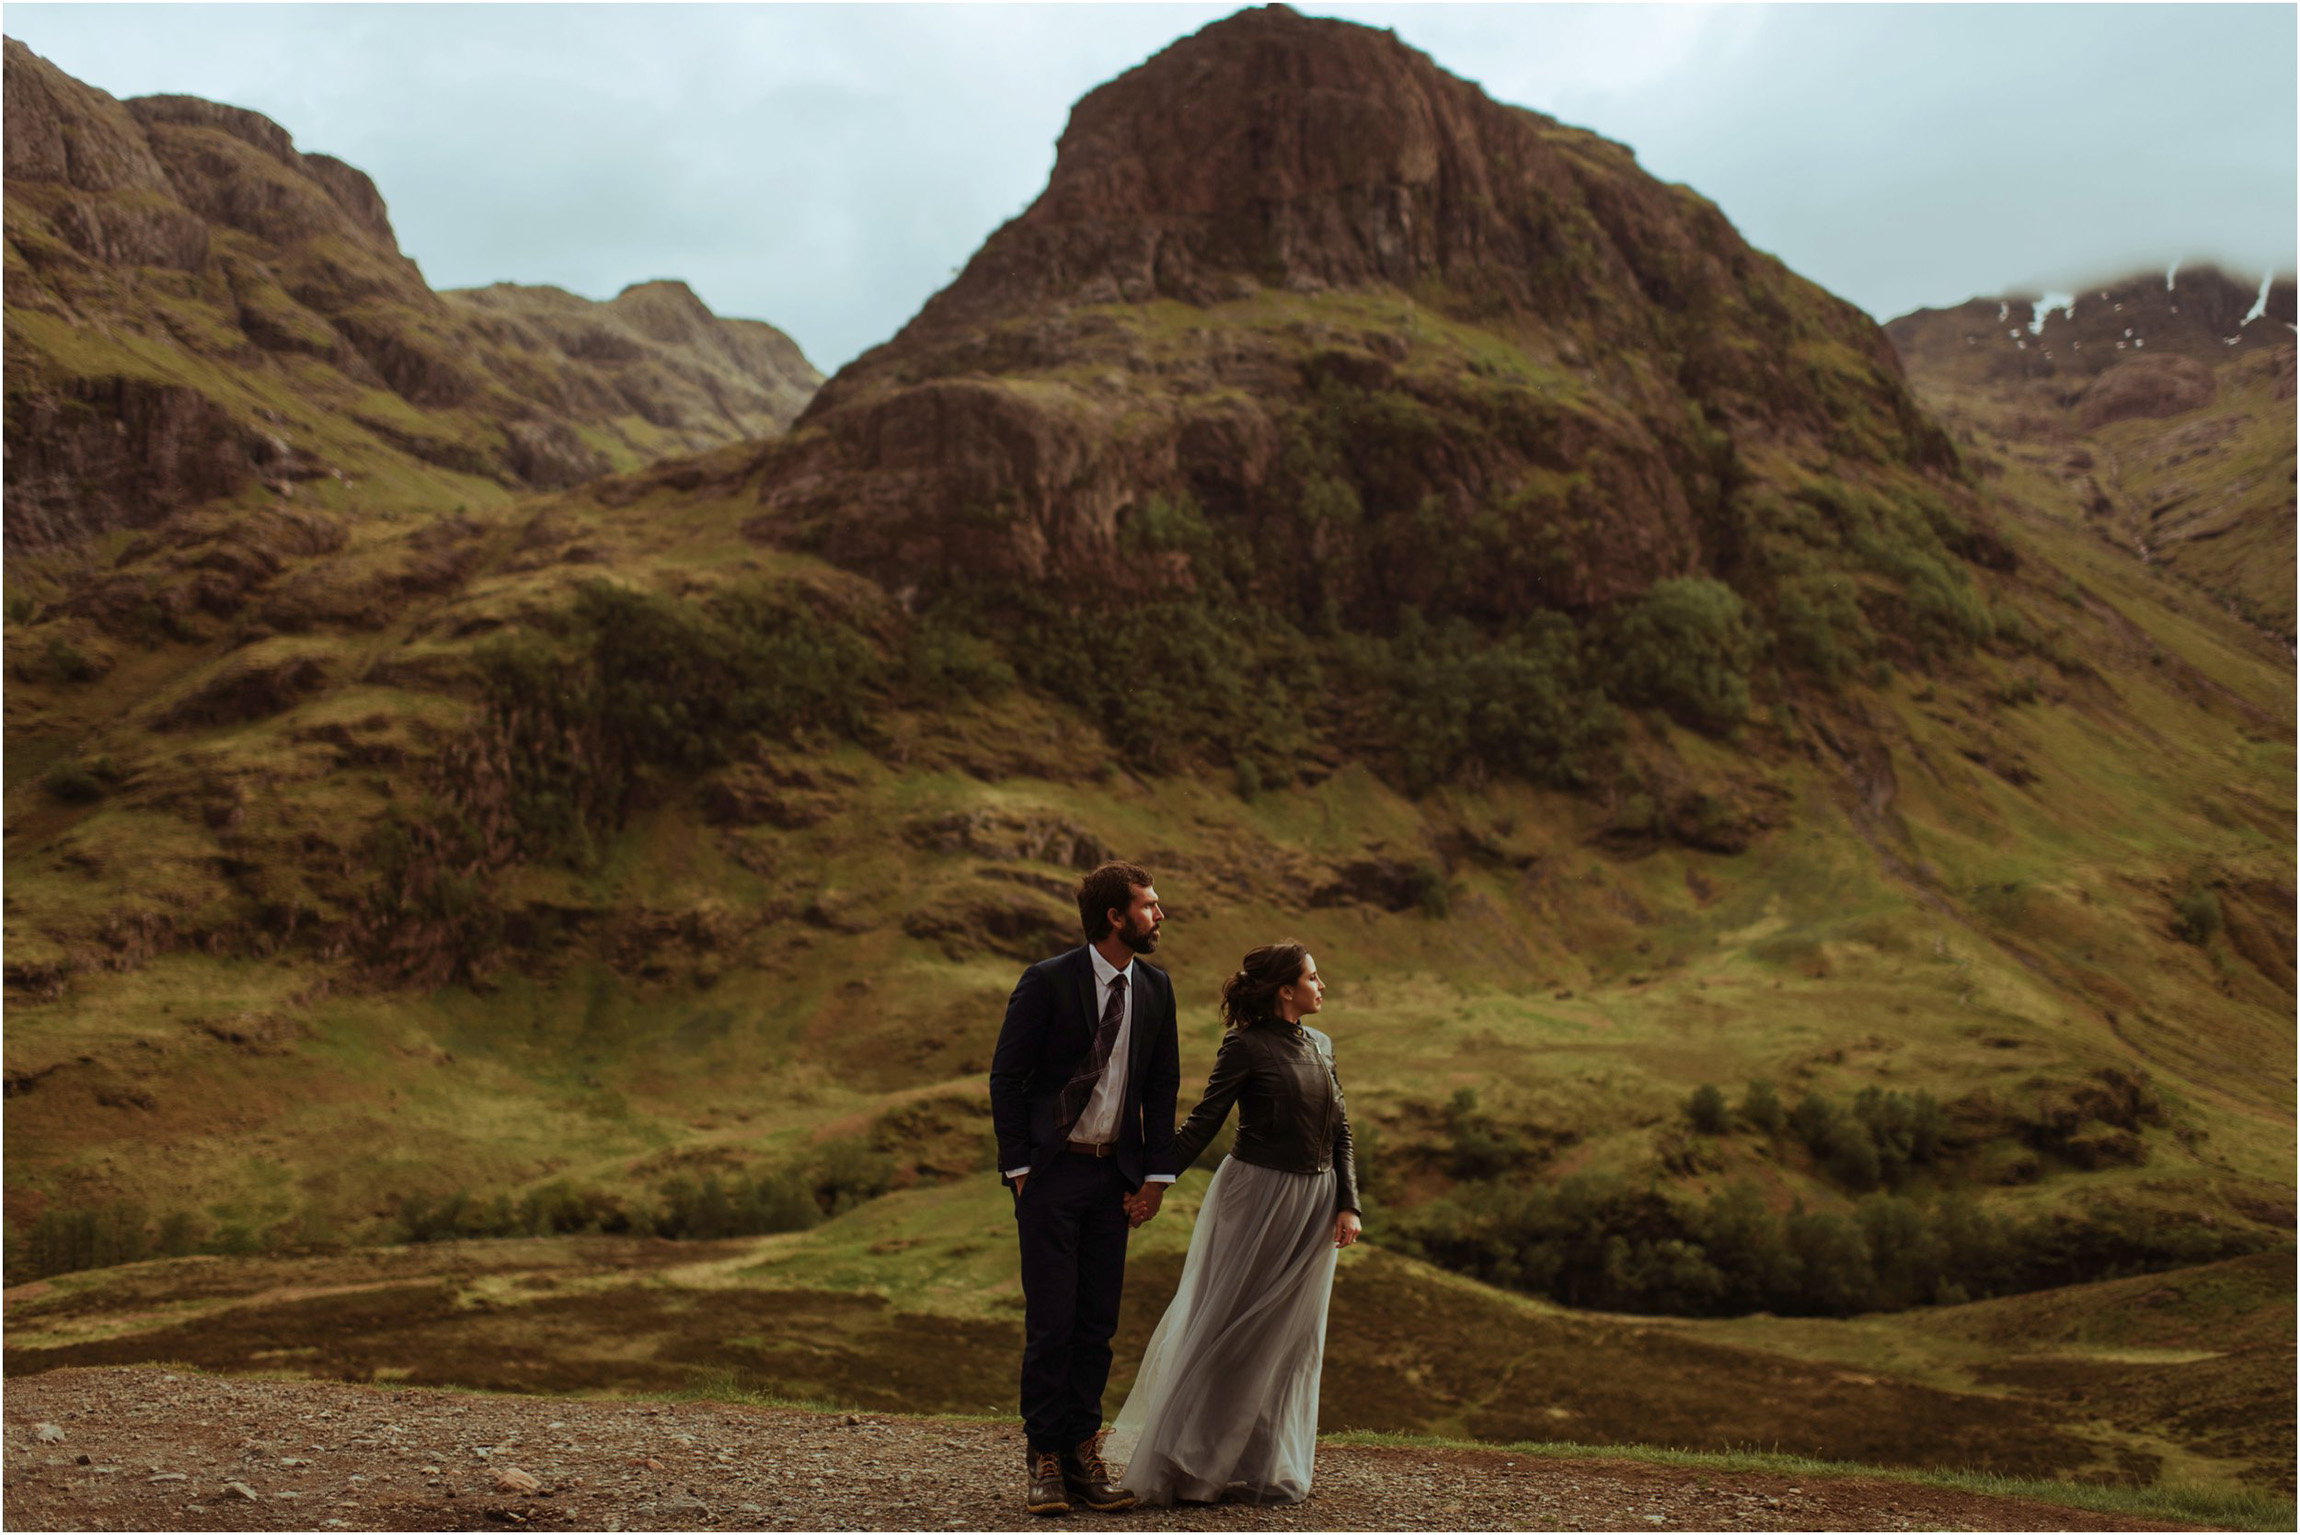 Scotland Wedding Photographer_Glencoe_Melanie_Jim_Anniversary_005.jpg